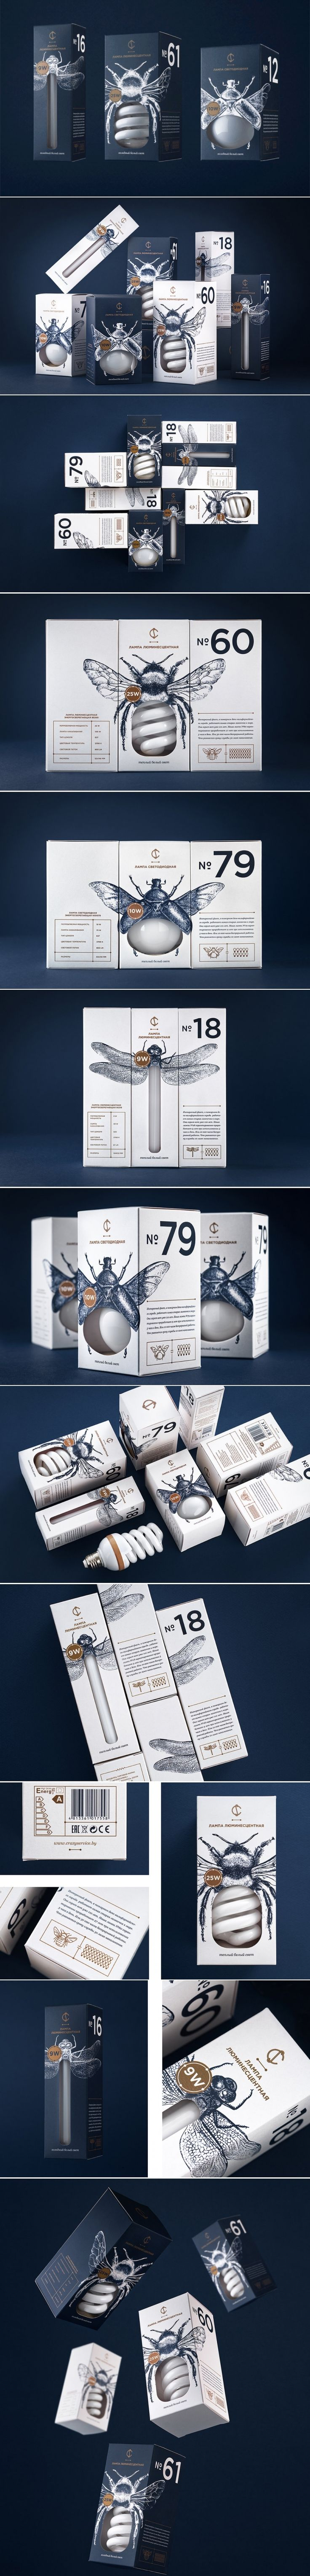 Fireflies Inspired This Clever Packaging for CS Light Bulbs — The Dieline | Packaging & Branding Design & Innovation News